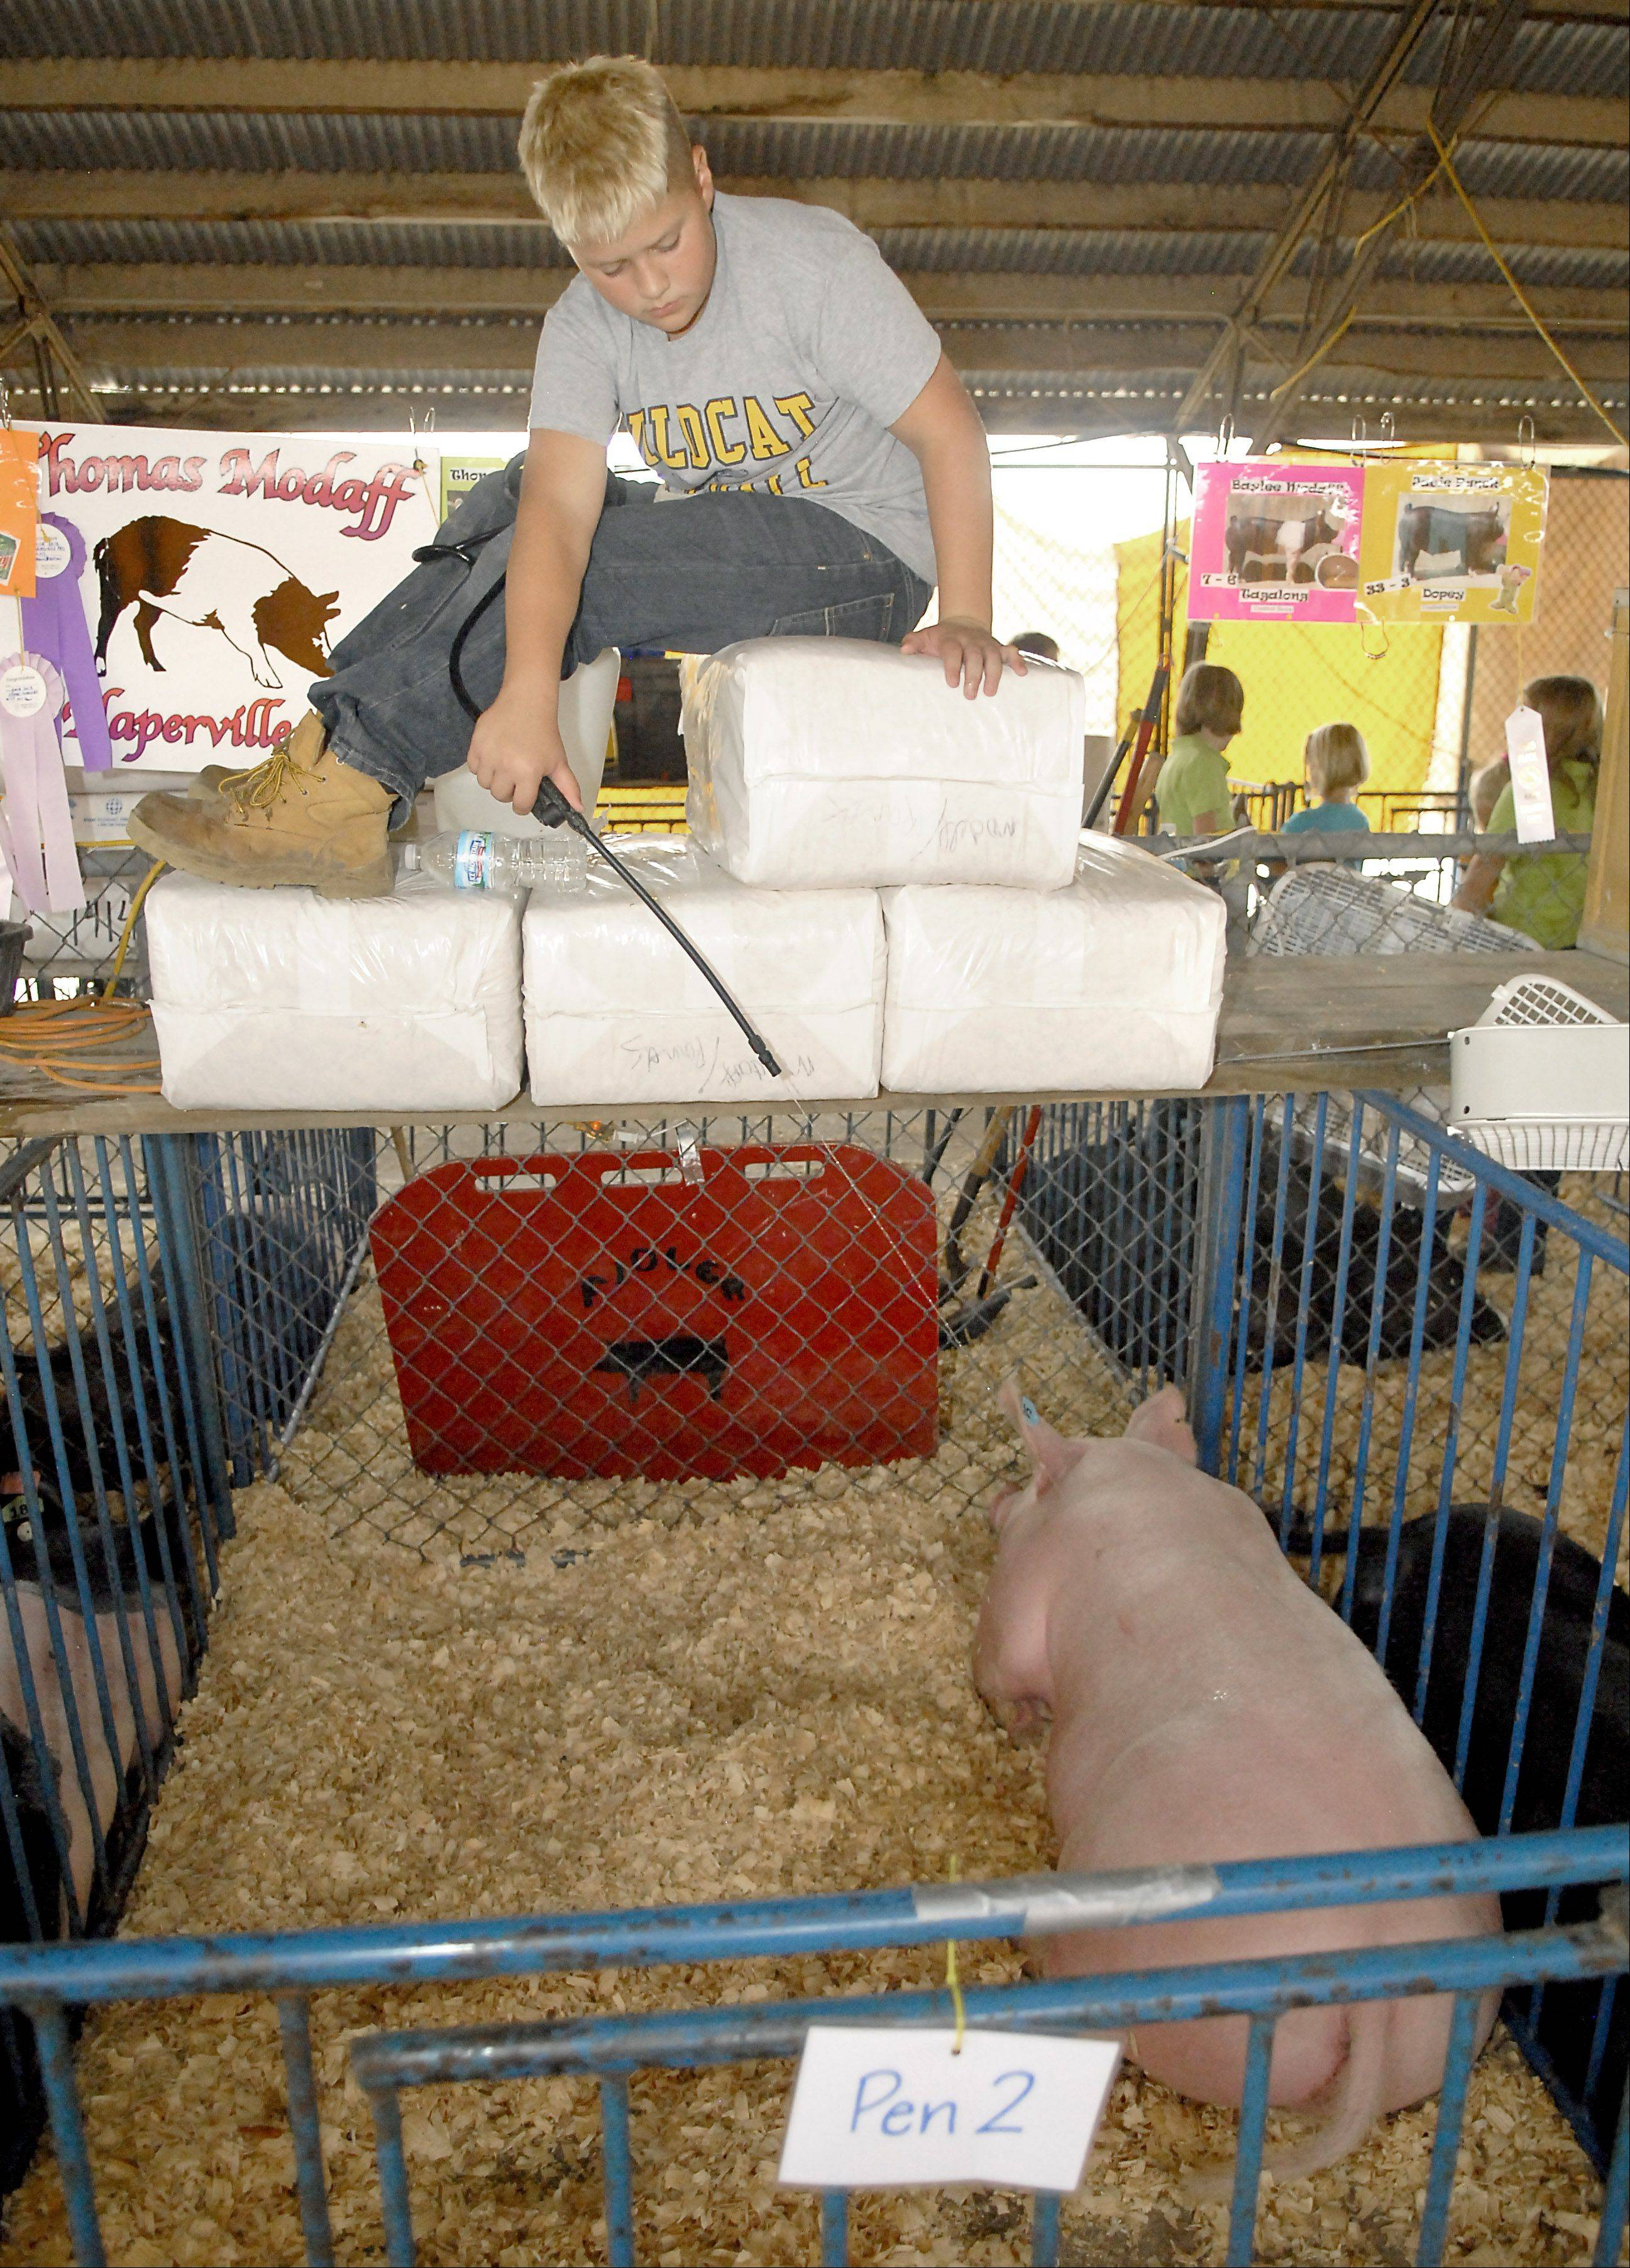 Thomas Modoff, 12, of Naperville sprays water on his pigs to help keep them cool during the second day of the Kane County Fair on July 19. Modoff has been showing pigs for five years.